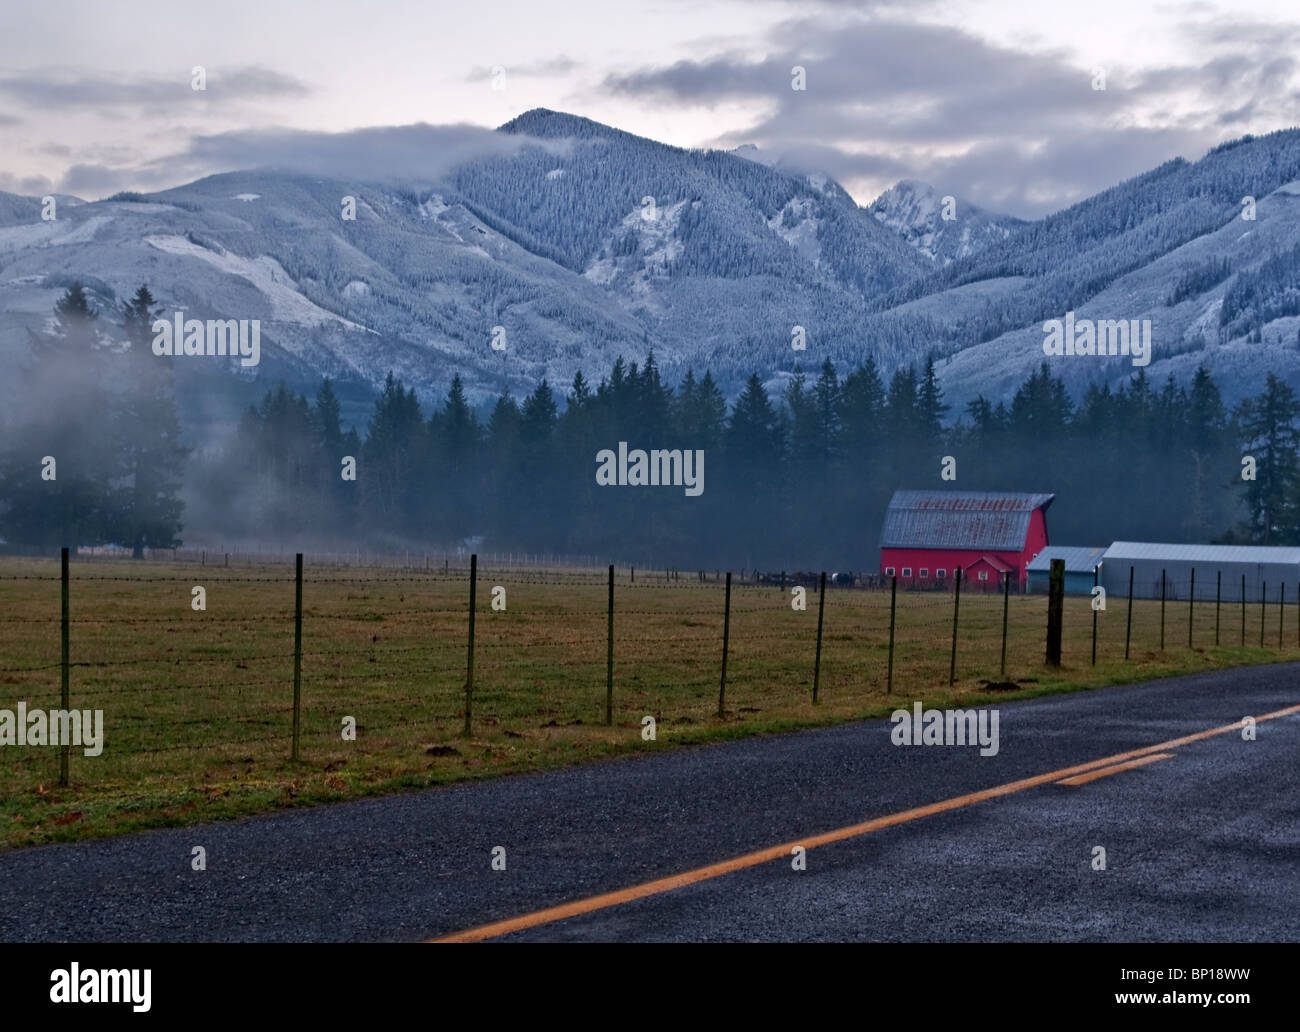 This Winter Country Farm Scene Has A Red Barn In The Background With Rural Lonely Road Snowy Mountains Backdrop